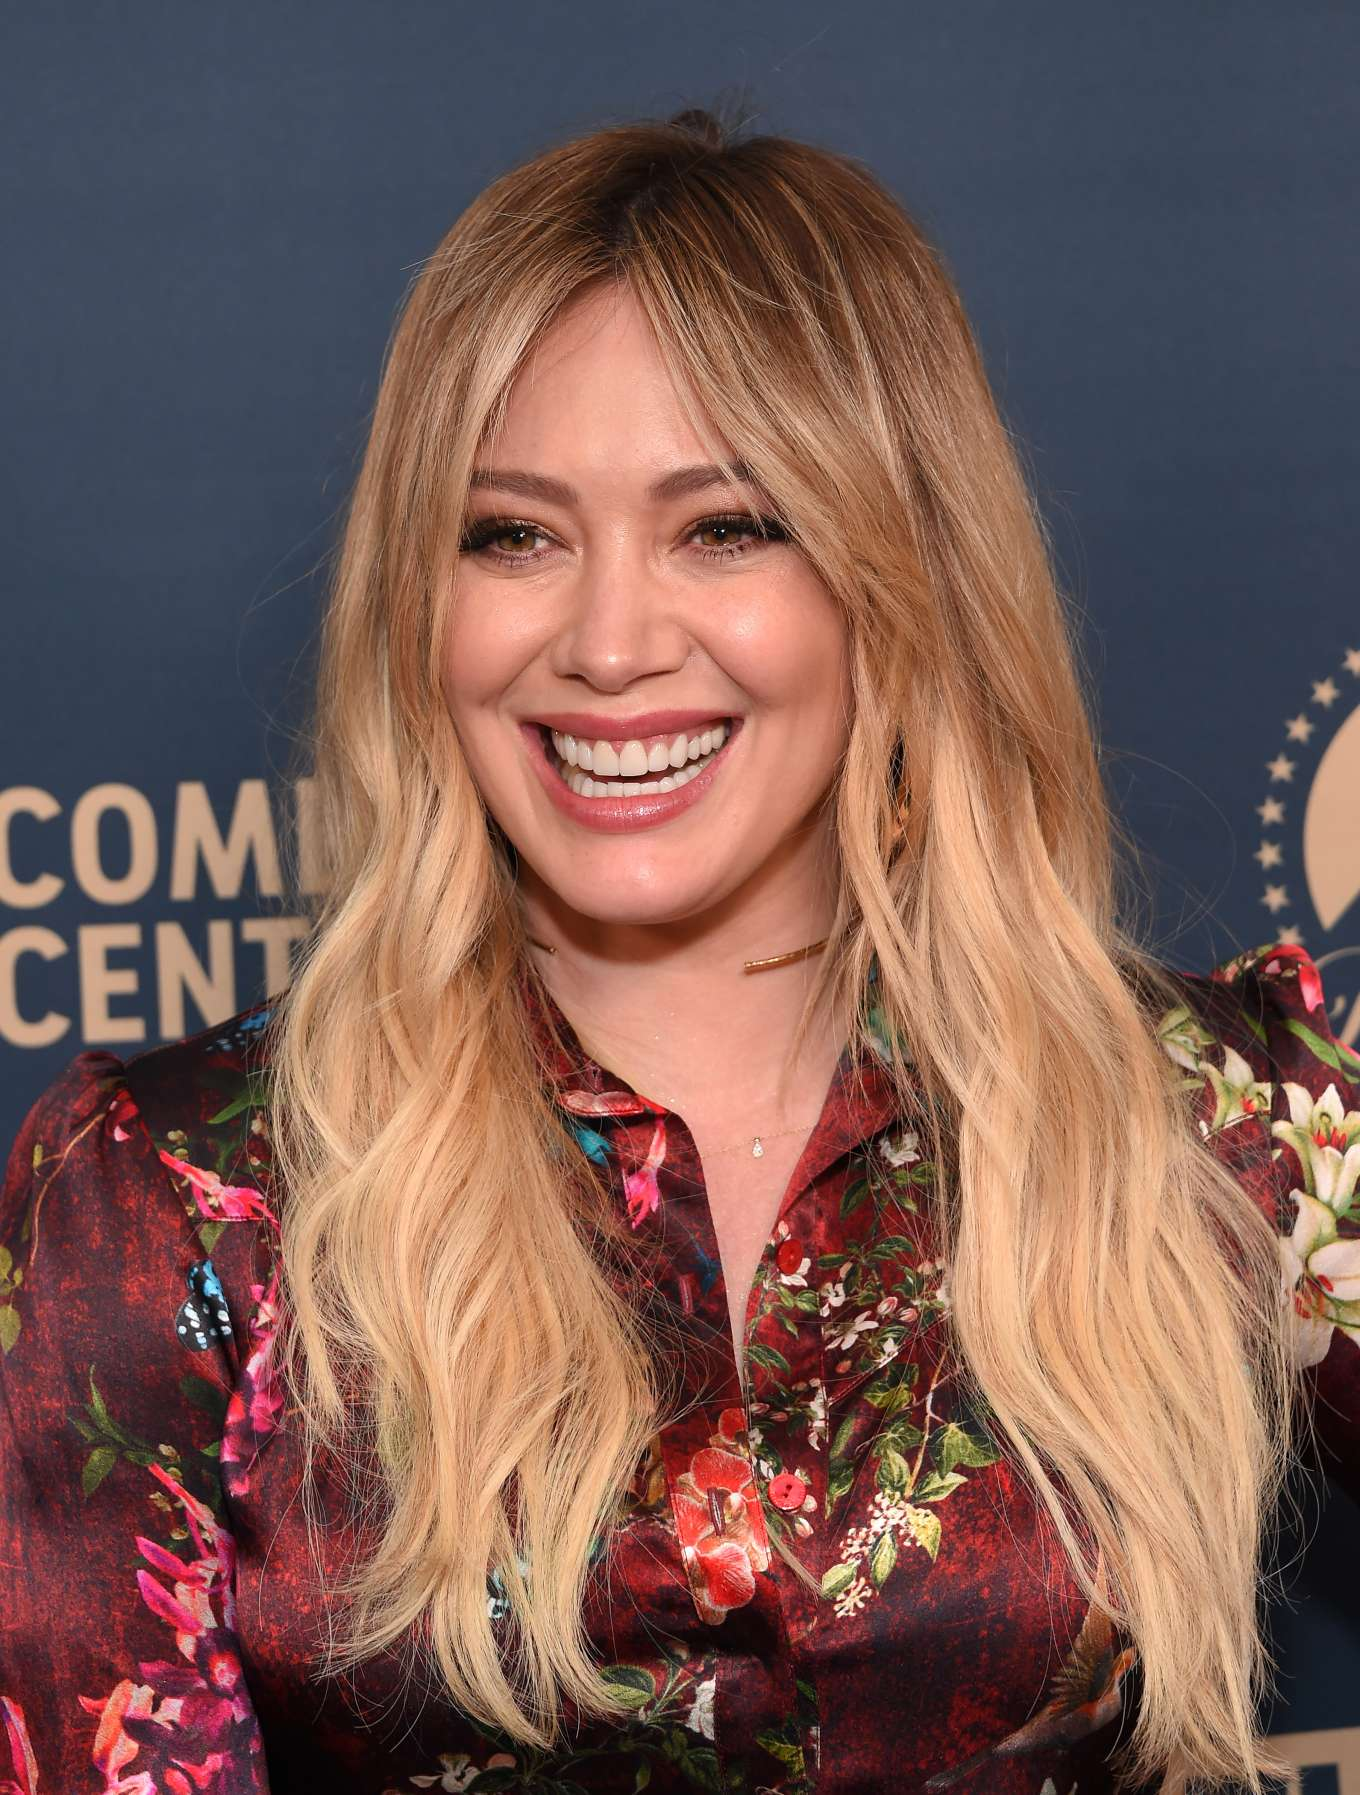 Hilary Duff - Comedy Central, Paramount Network and TV Land Press Day in LA